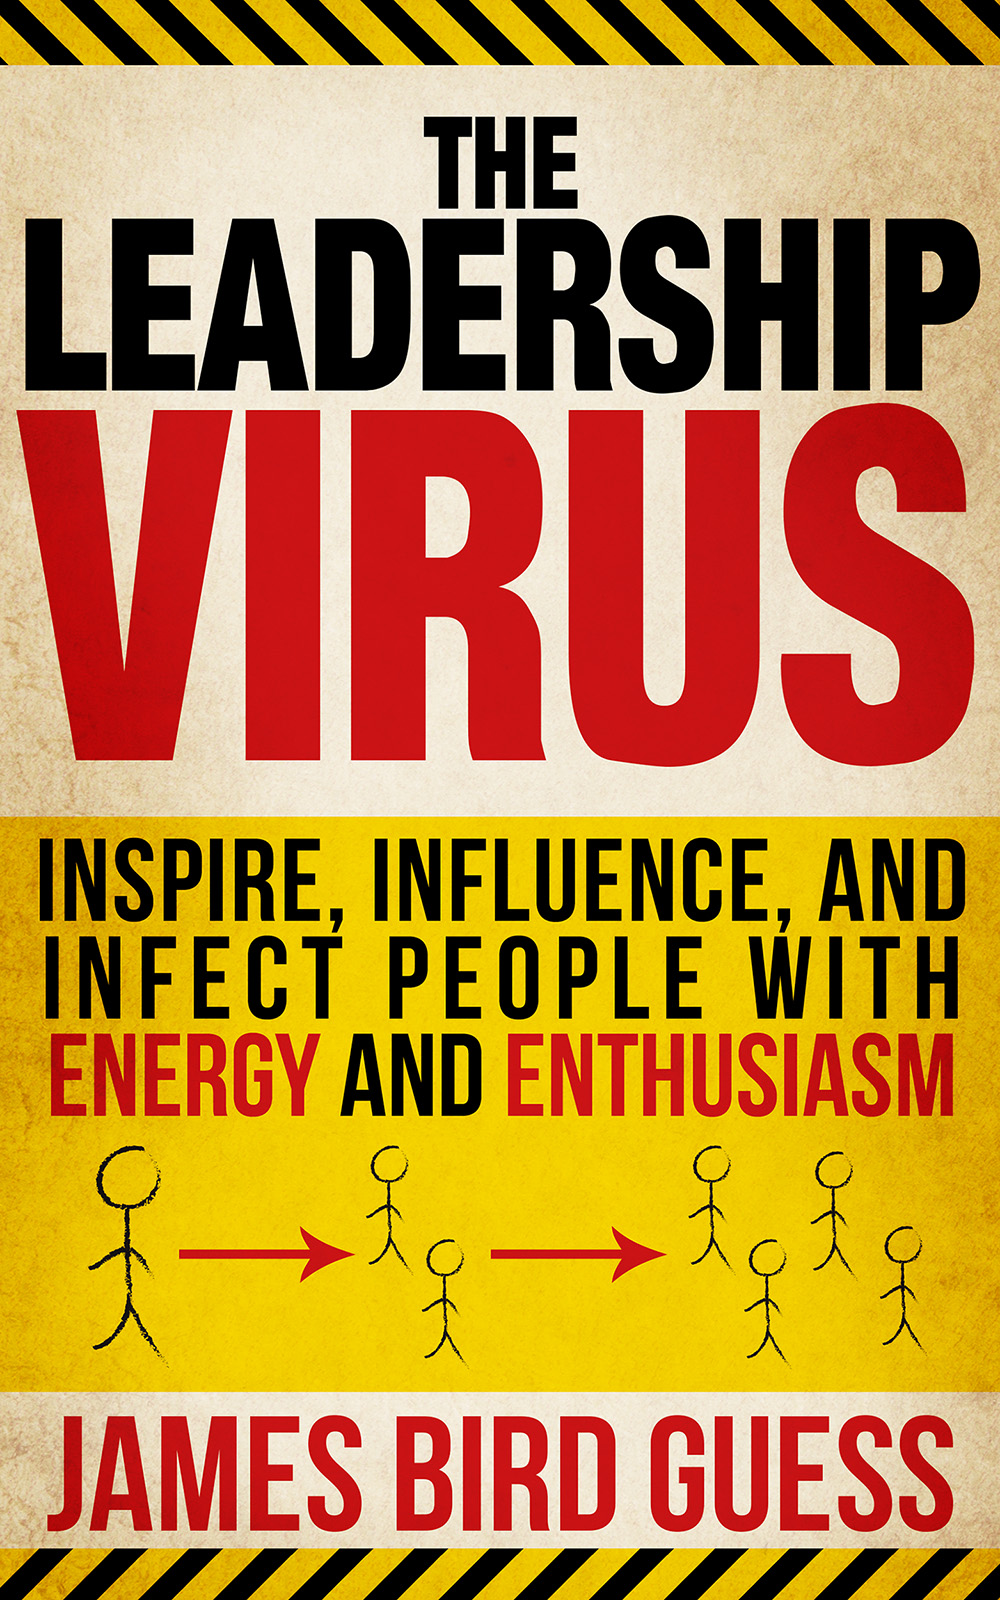 Leadership Virus: Inspire, Influence, and Infect People with Energy and Enthusiasm